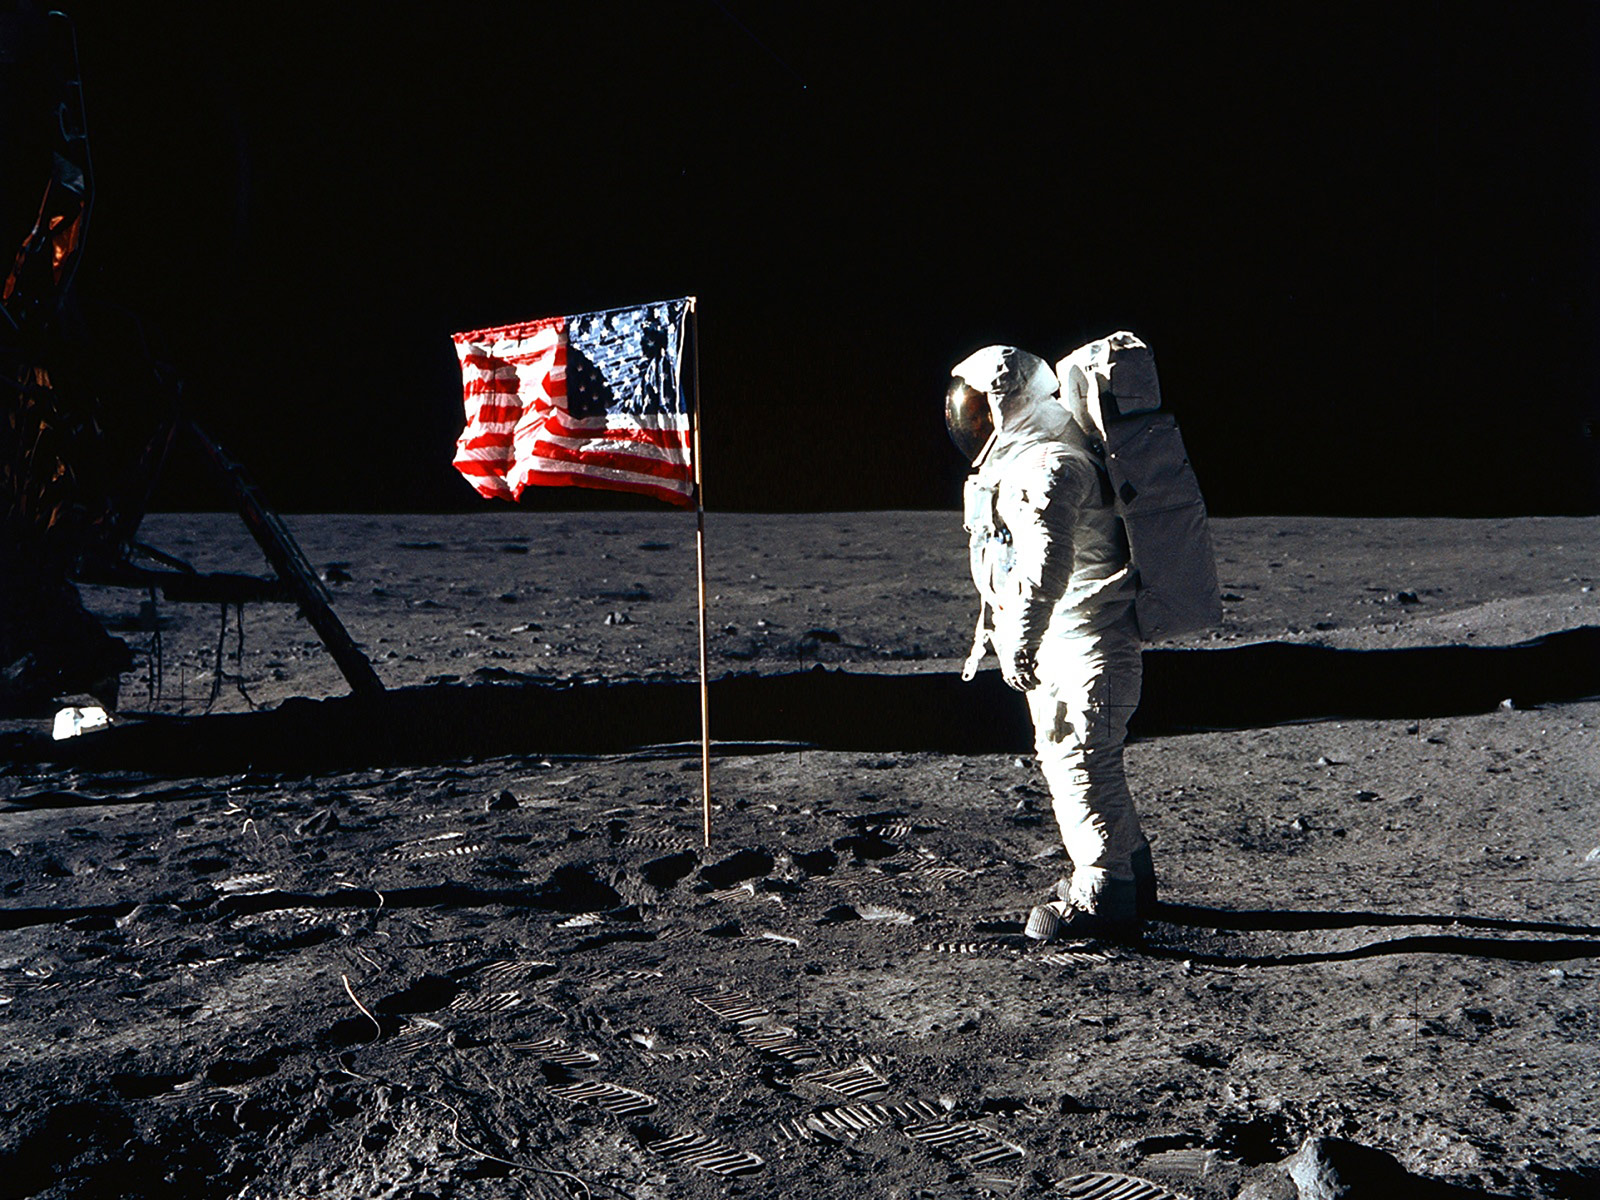 u.s._flag_on_moon__apollo_11_